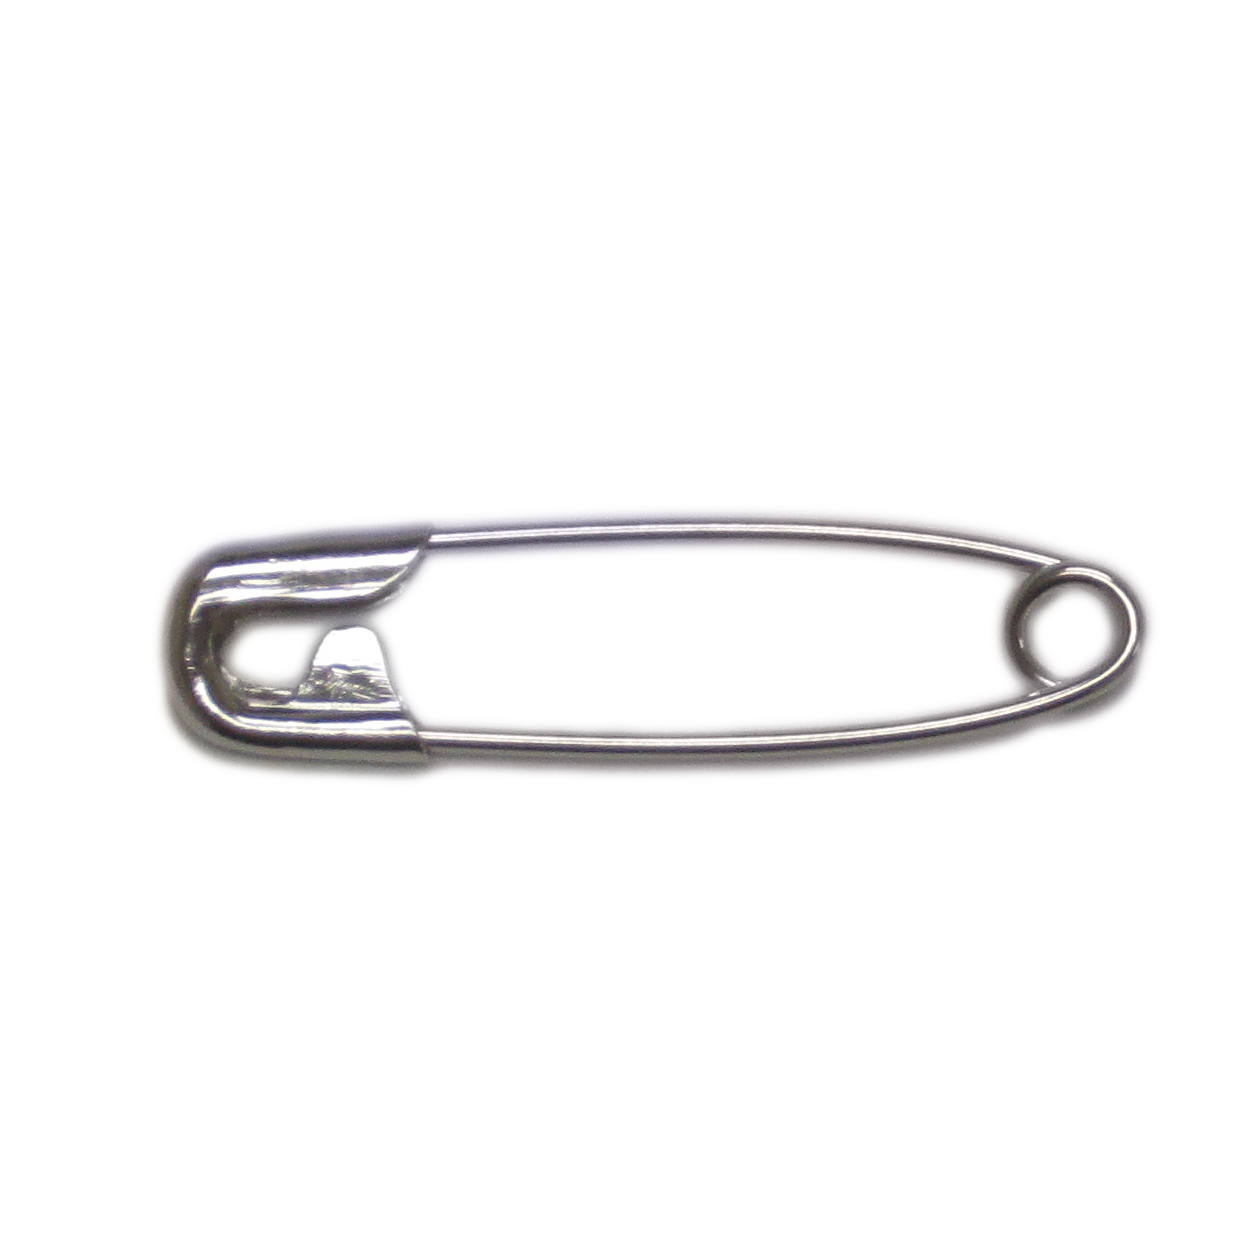 Png safety pin. Nickel plated pins